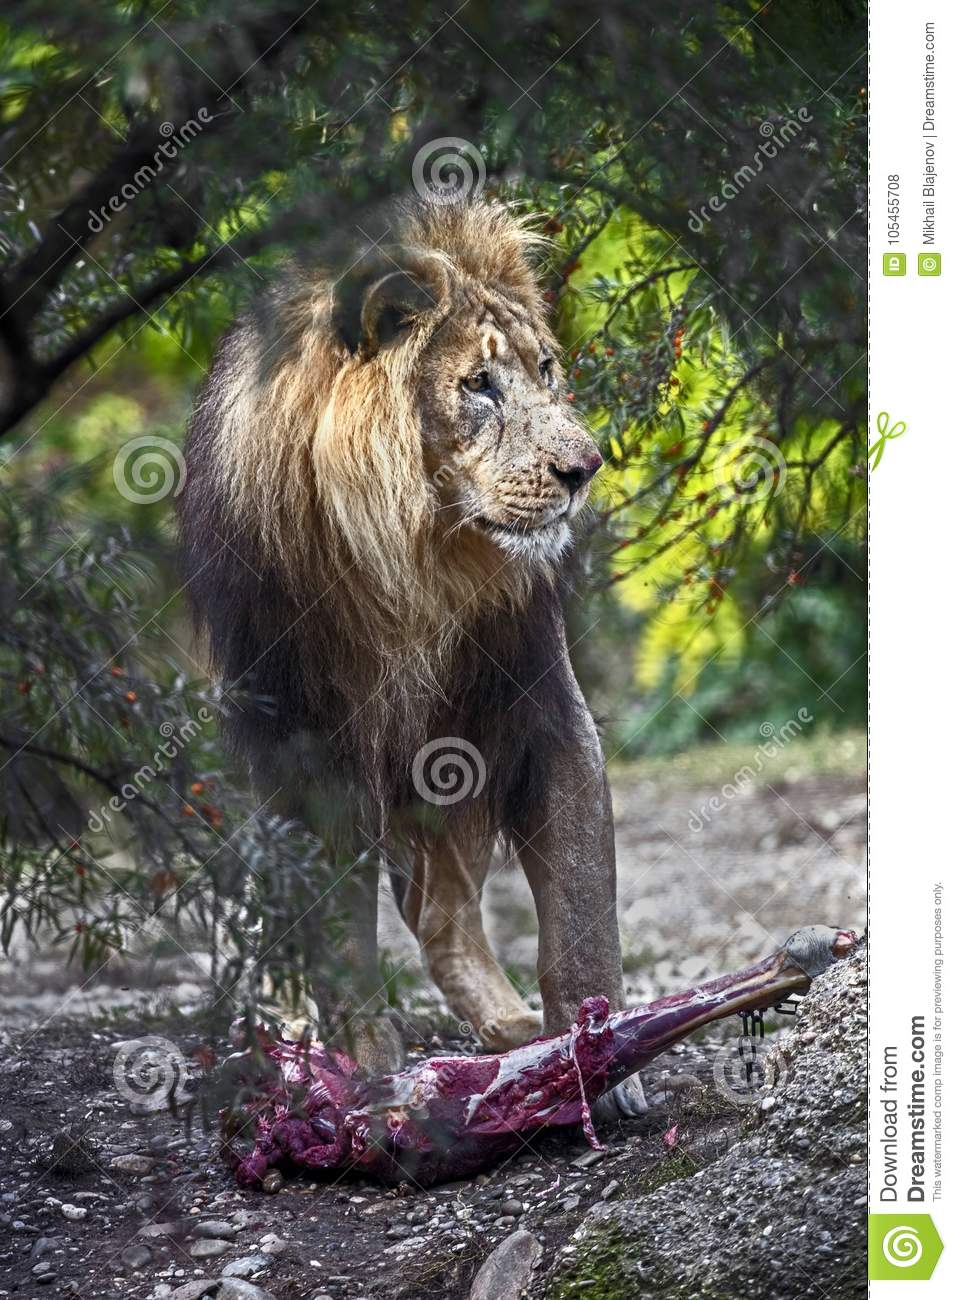 Lion male 3 stock photo  Image of creature, hunting - 105455708